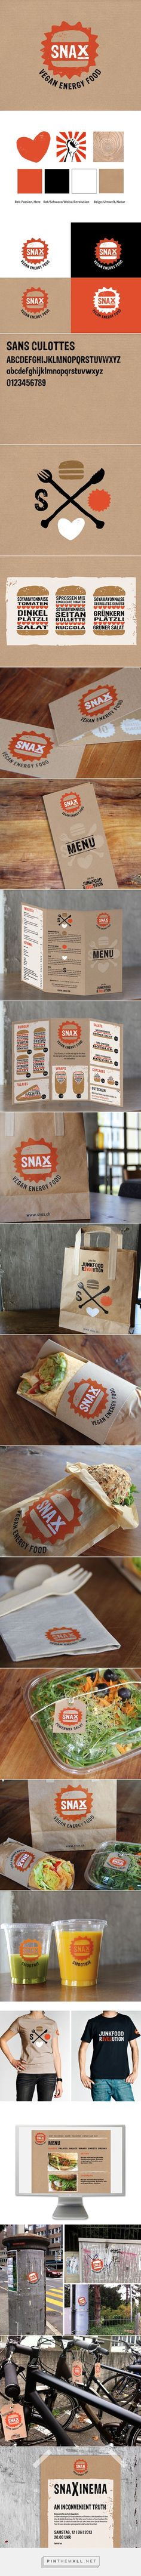 Vegan fast food restaurant on Behance. - a grouped images picture Vegan Fast Food, Fast Healthy Meals, Healthy Life, Food Branding, Fast Food Restaurant, Behance, Create, Vii, Identity